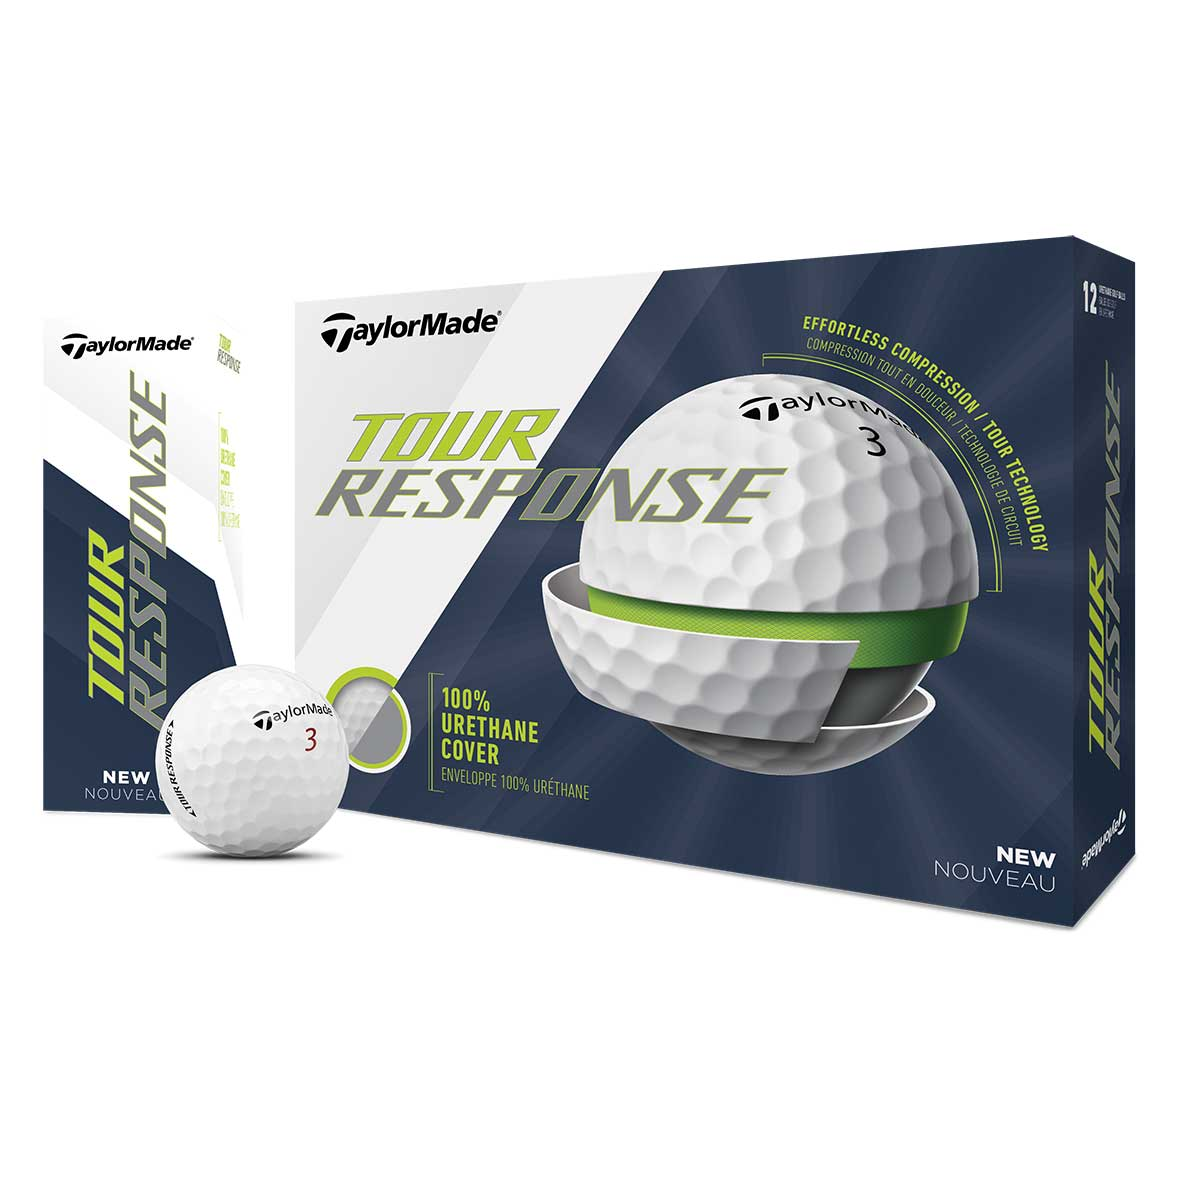 TaylorMade 2020 Tour Response Golf Ball